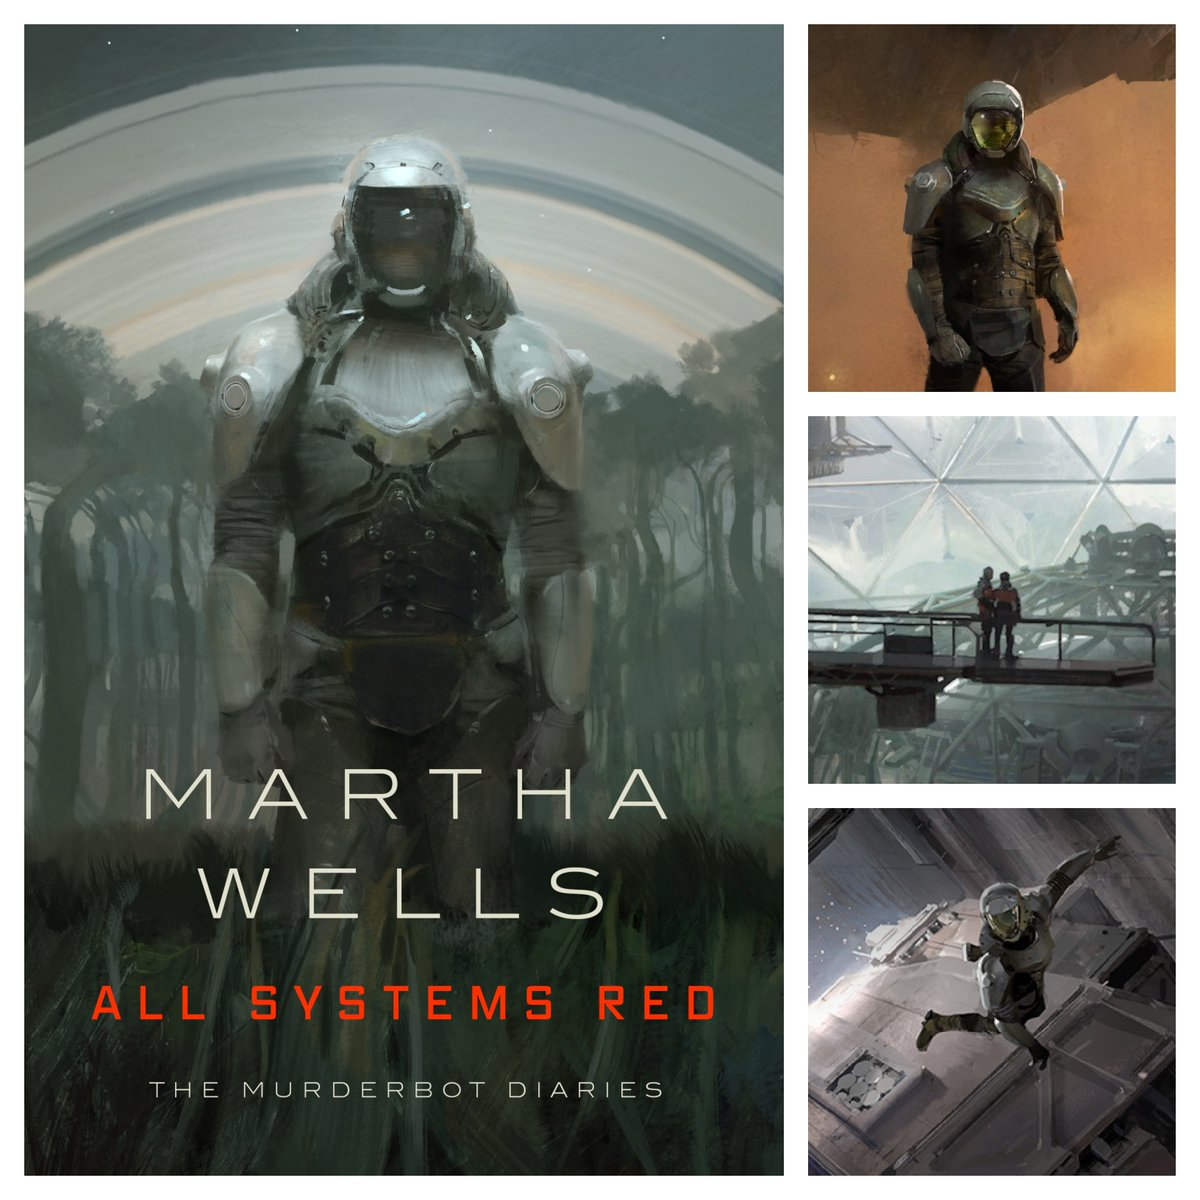 🤖 Five Things You Don't Know About the Murderbot Diaries from @marthawells1:https://marthawells.dreamwidth.org/511317.html